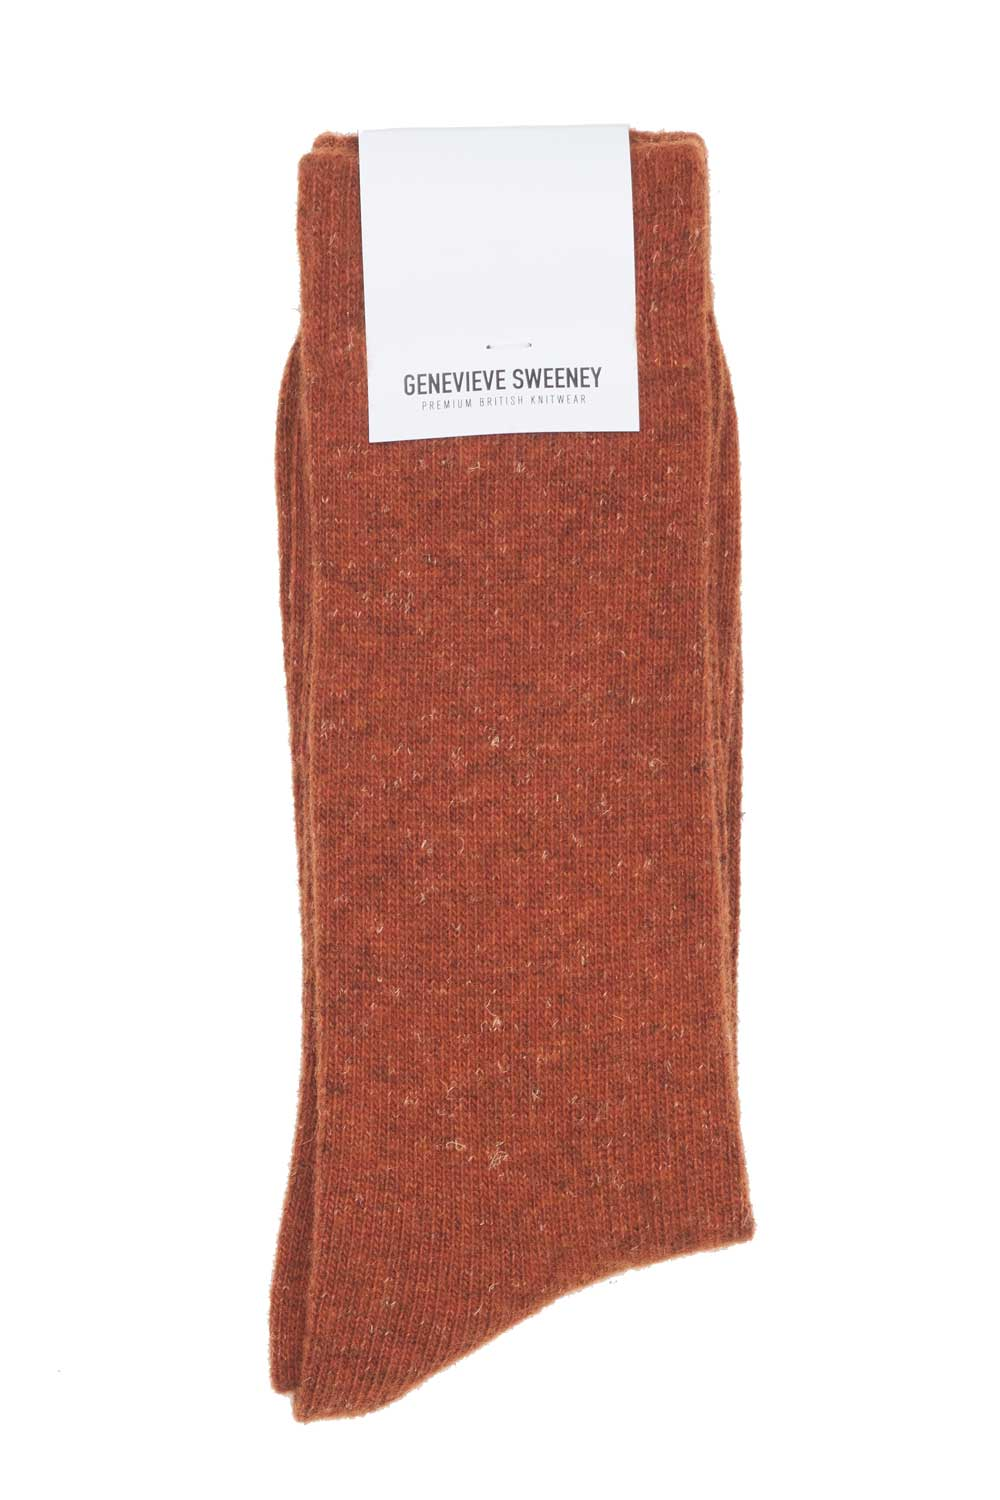 Wooly mens socks made in Britain Orange